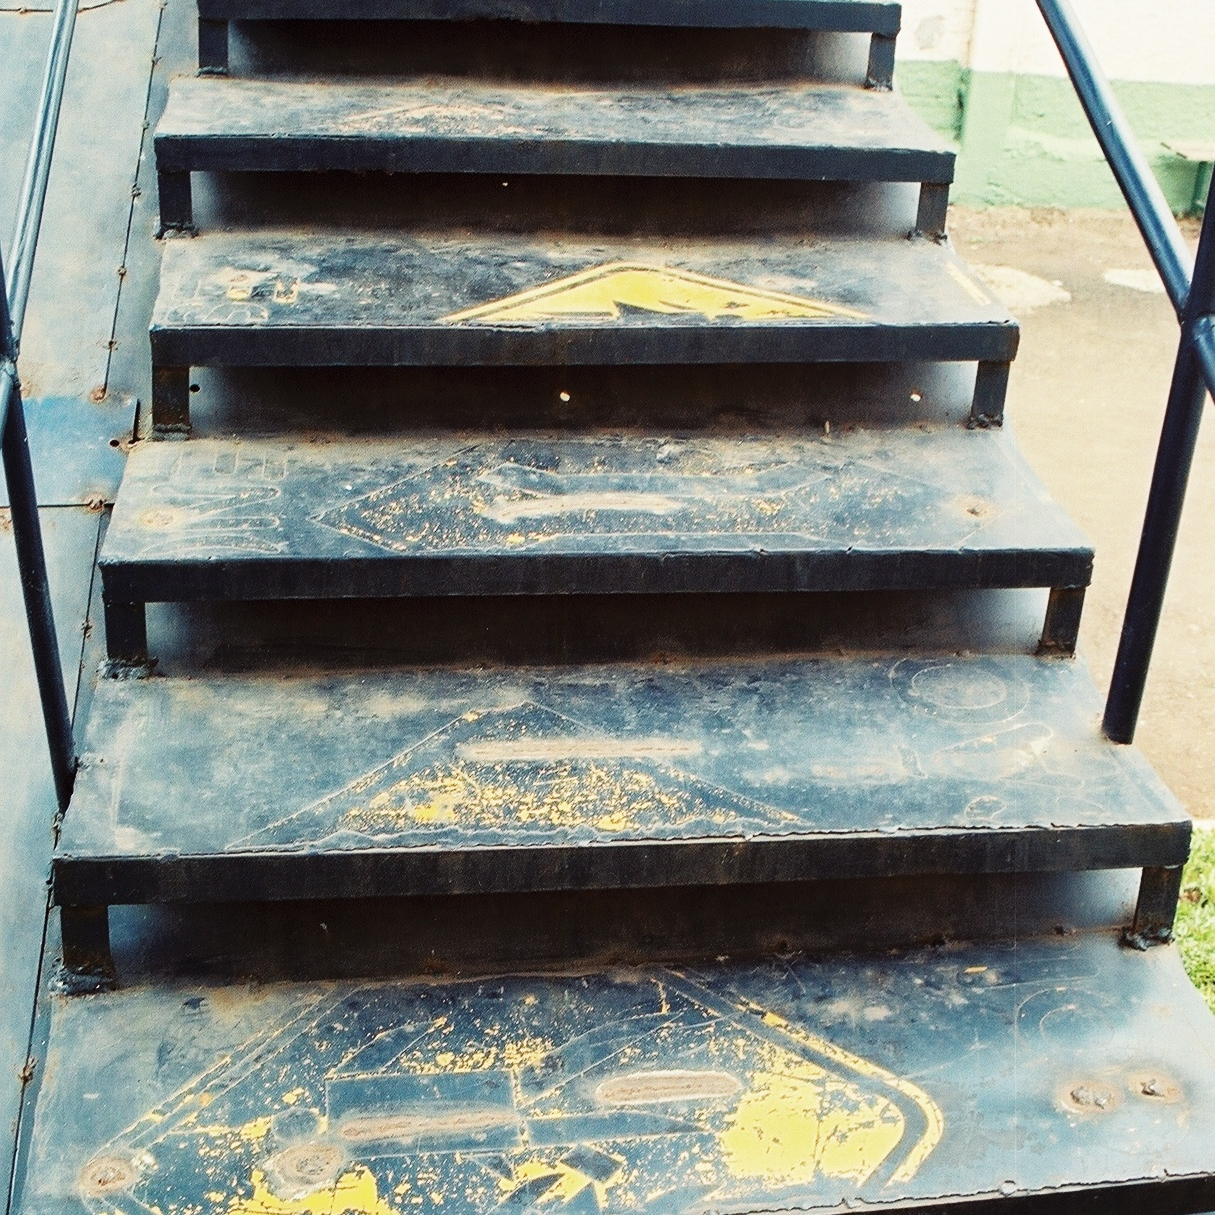 Once a road sign, now the steps of a stair. Photo: Pamy Rojas